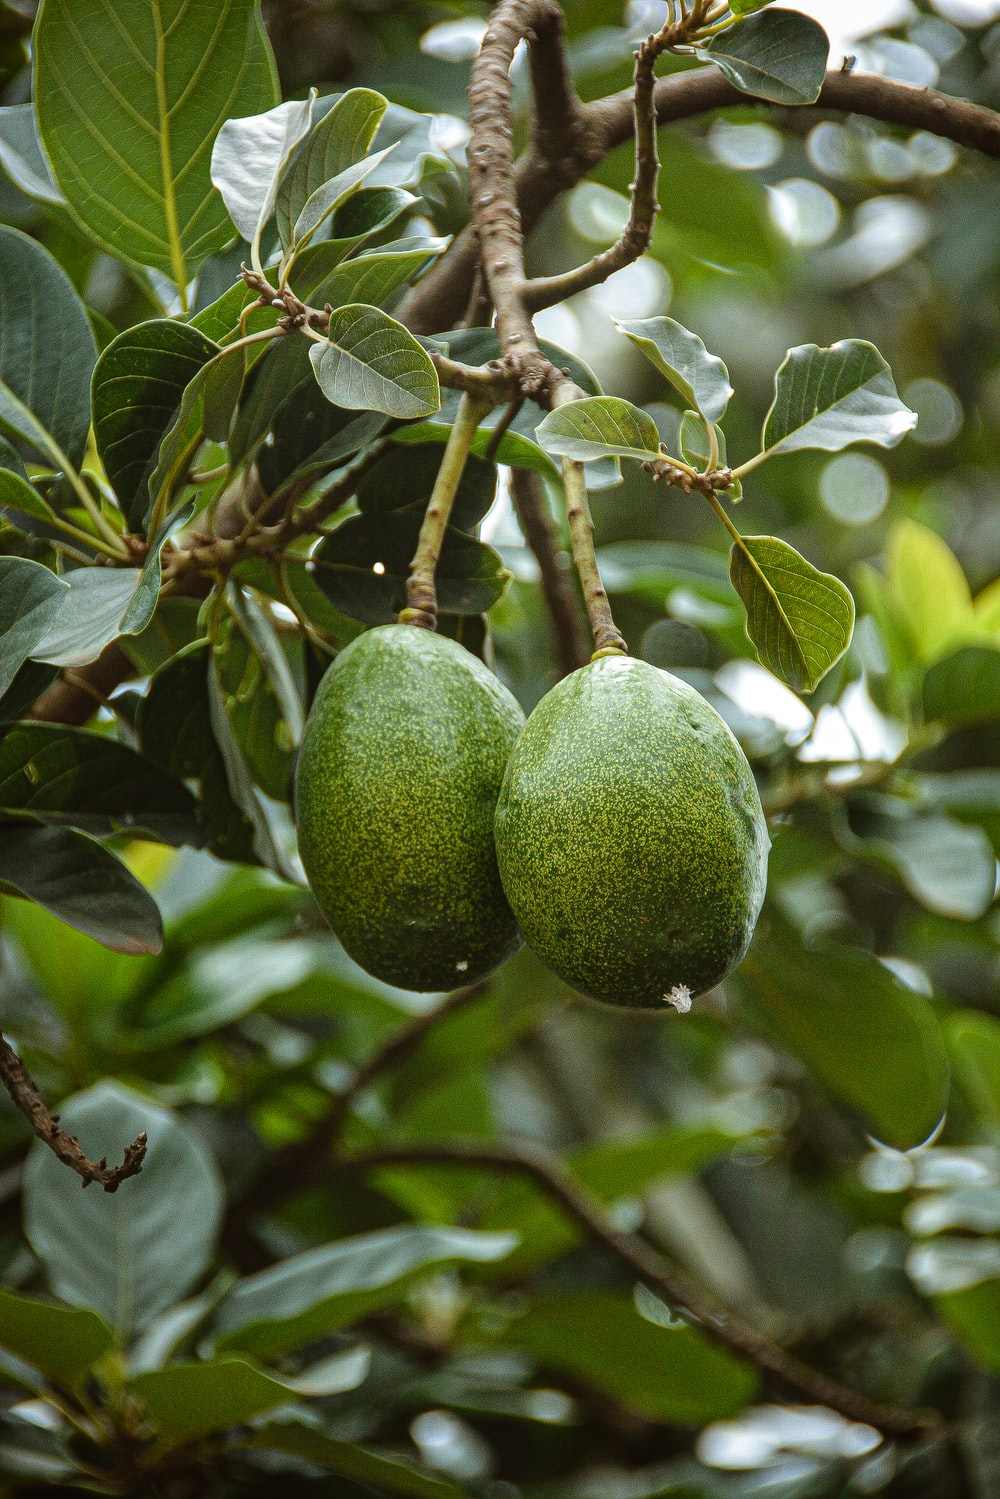 green round fruit on tree, type B avocado